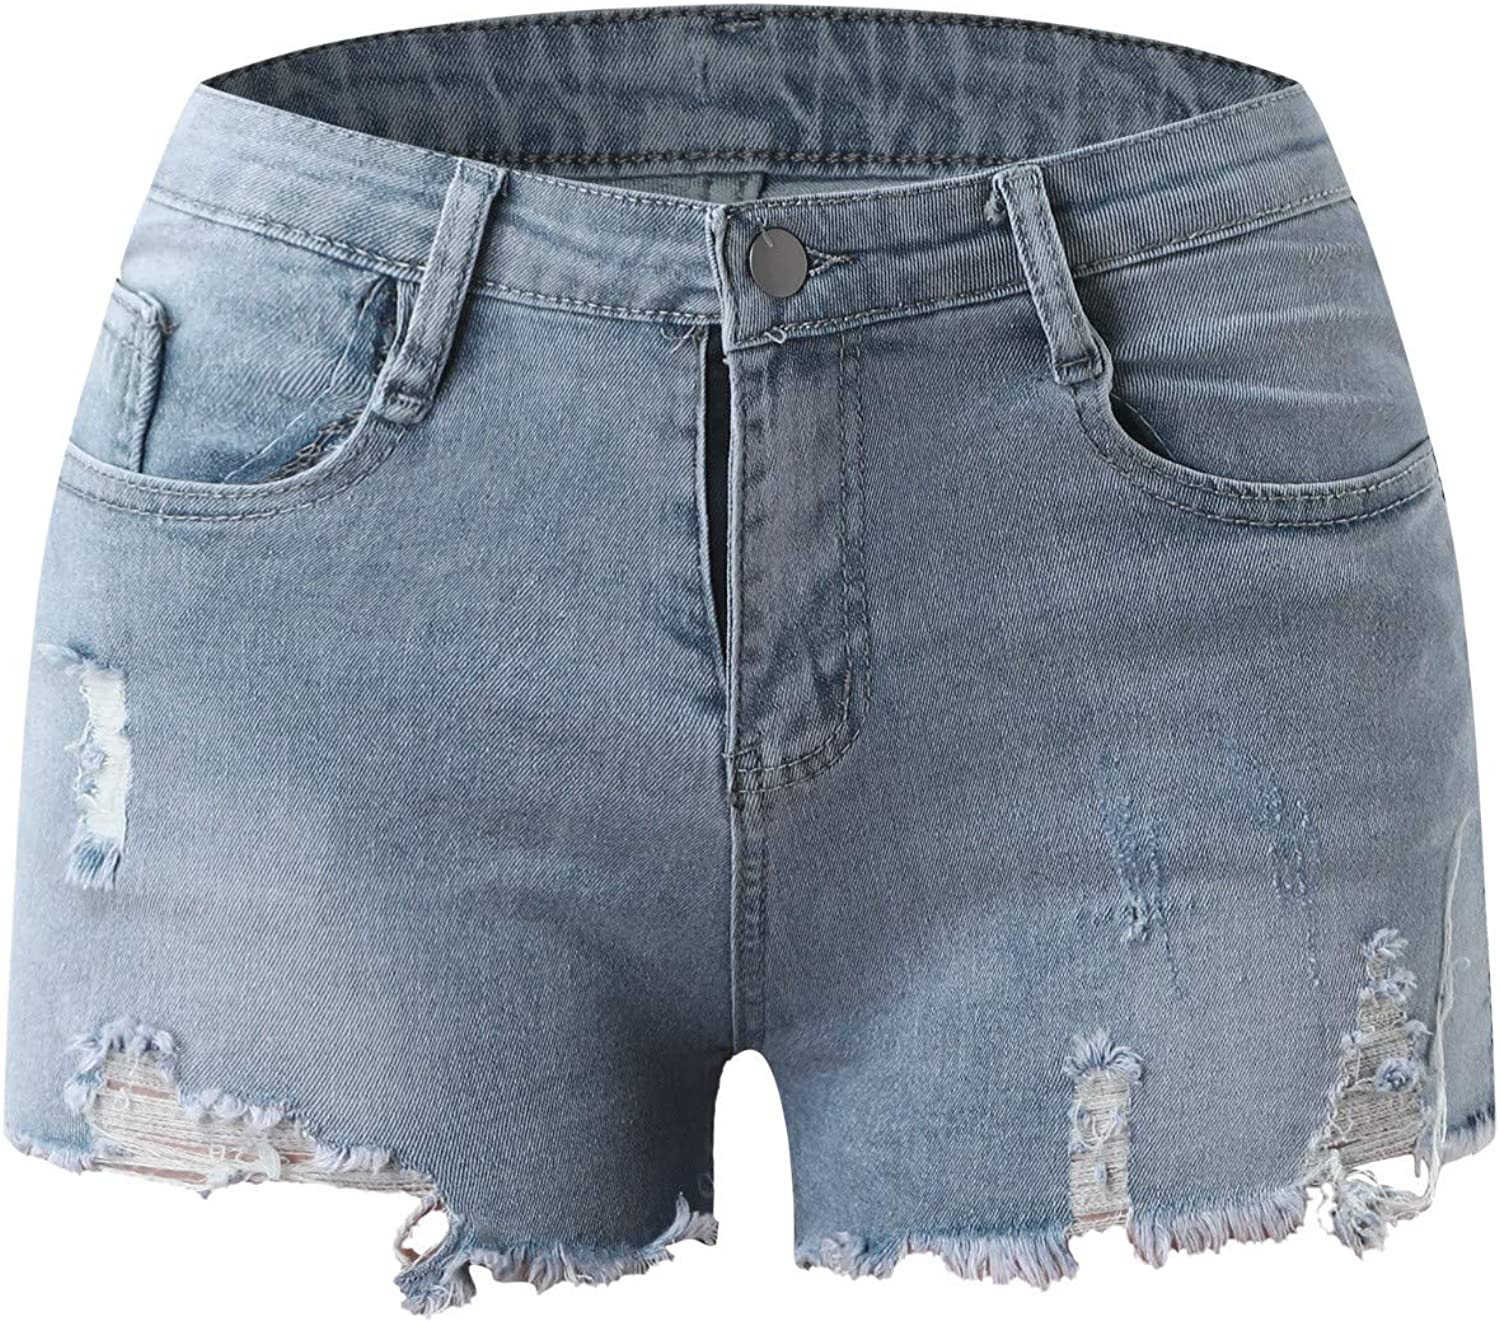 fartey Jean Shorts for Women Jeans Solid Color Blue Denim Shorts with Ripped Pockets